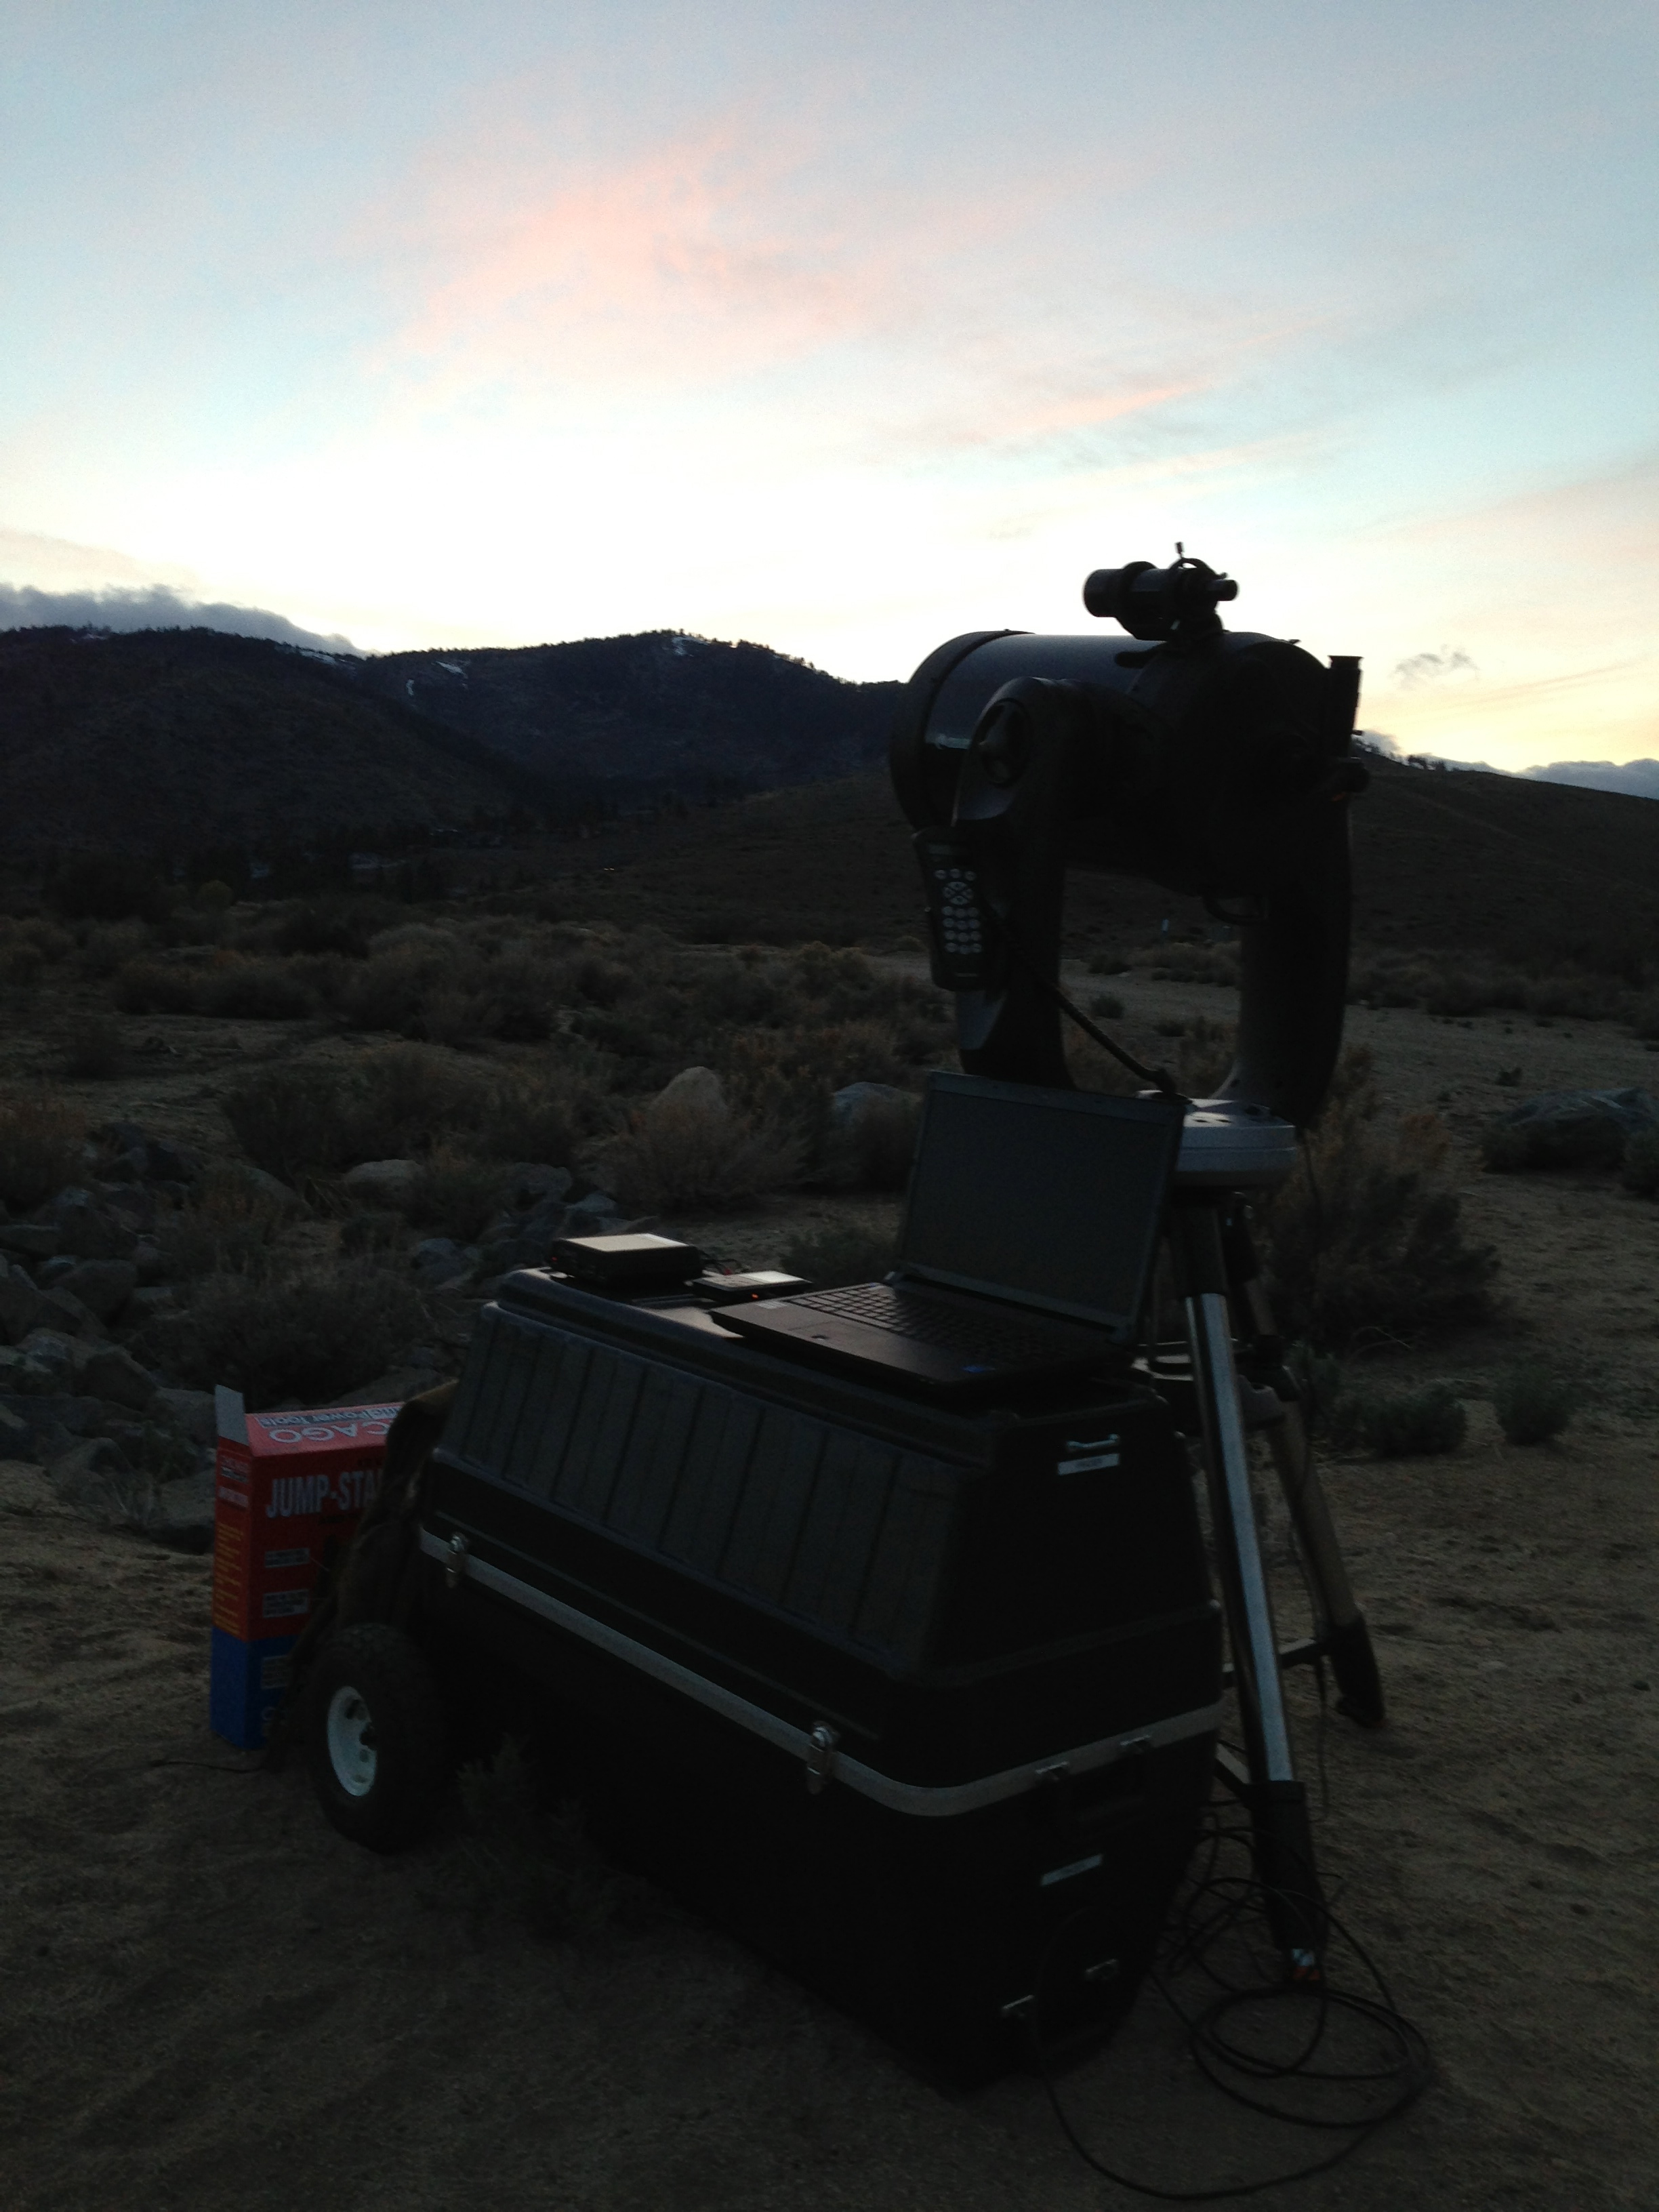 The Reno Recon telescope set up and ready to go as soon as it gets dark.